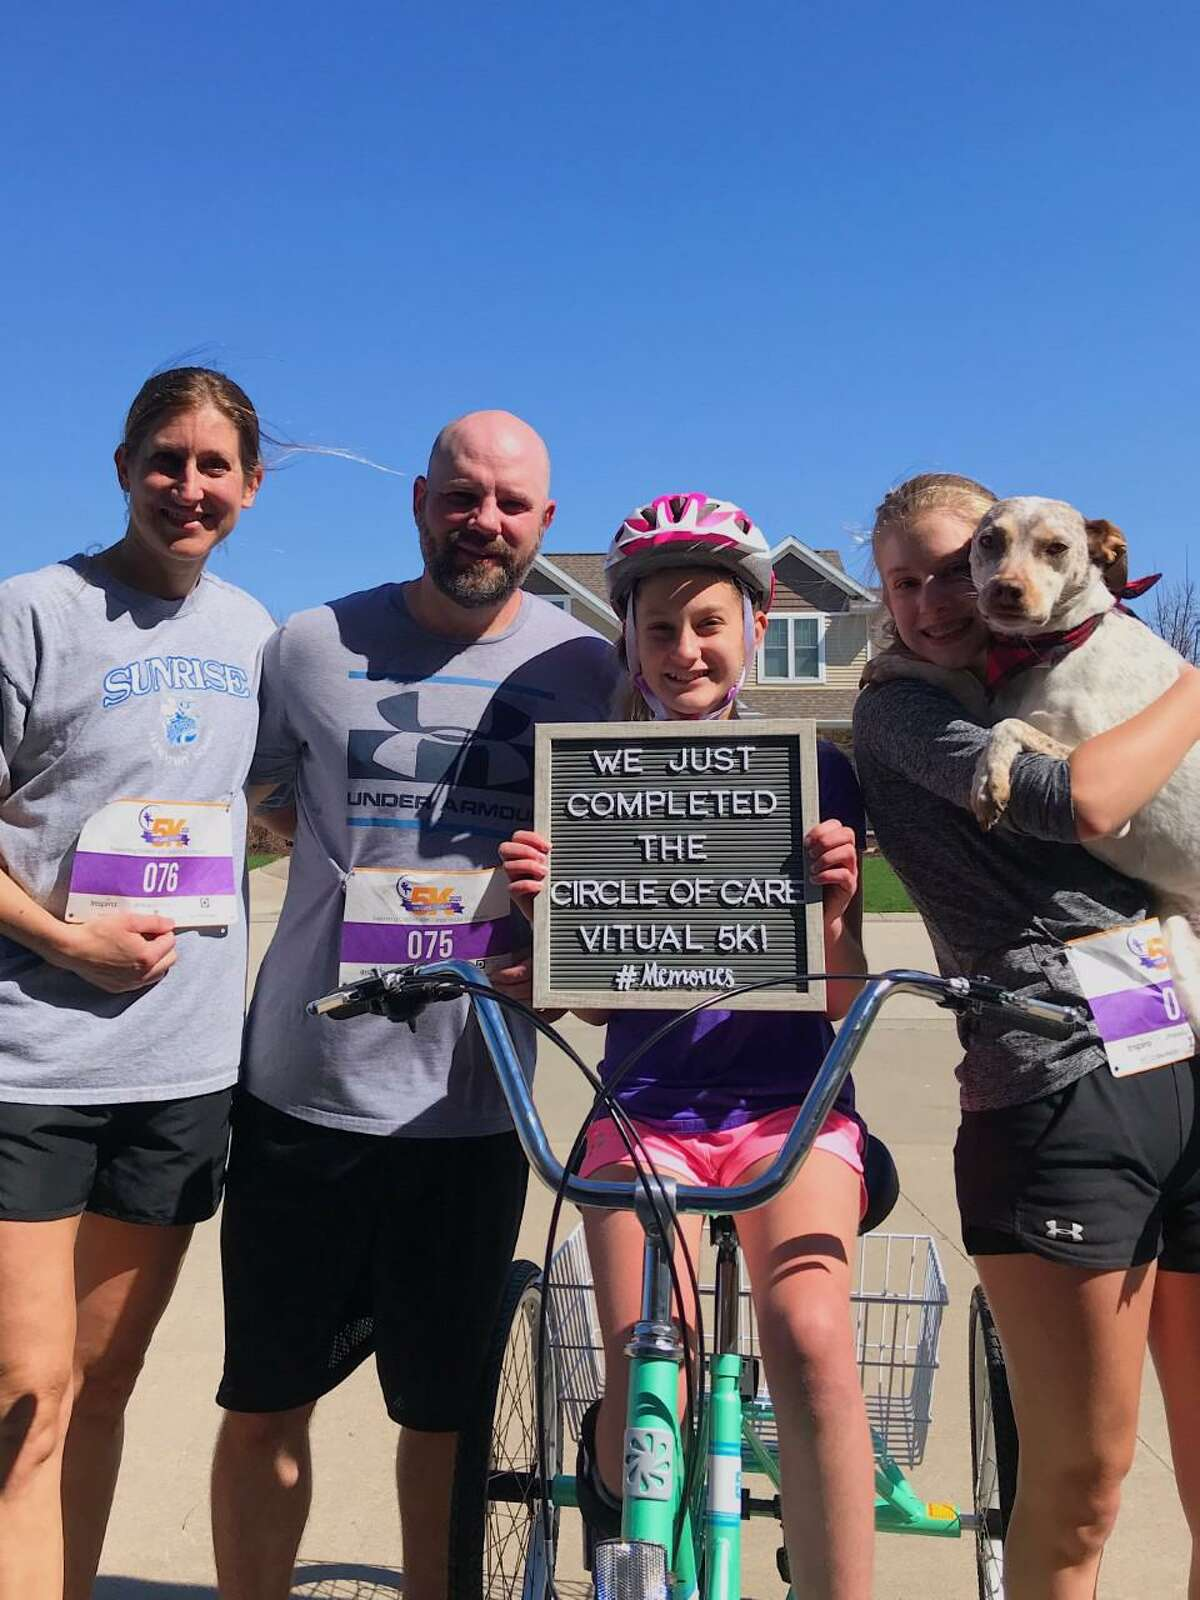 A Wisconsin family, grateful to Circle of Care for its help when they lived Connecticut, participated in the virtual 5K.